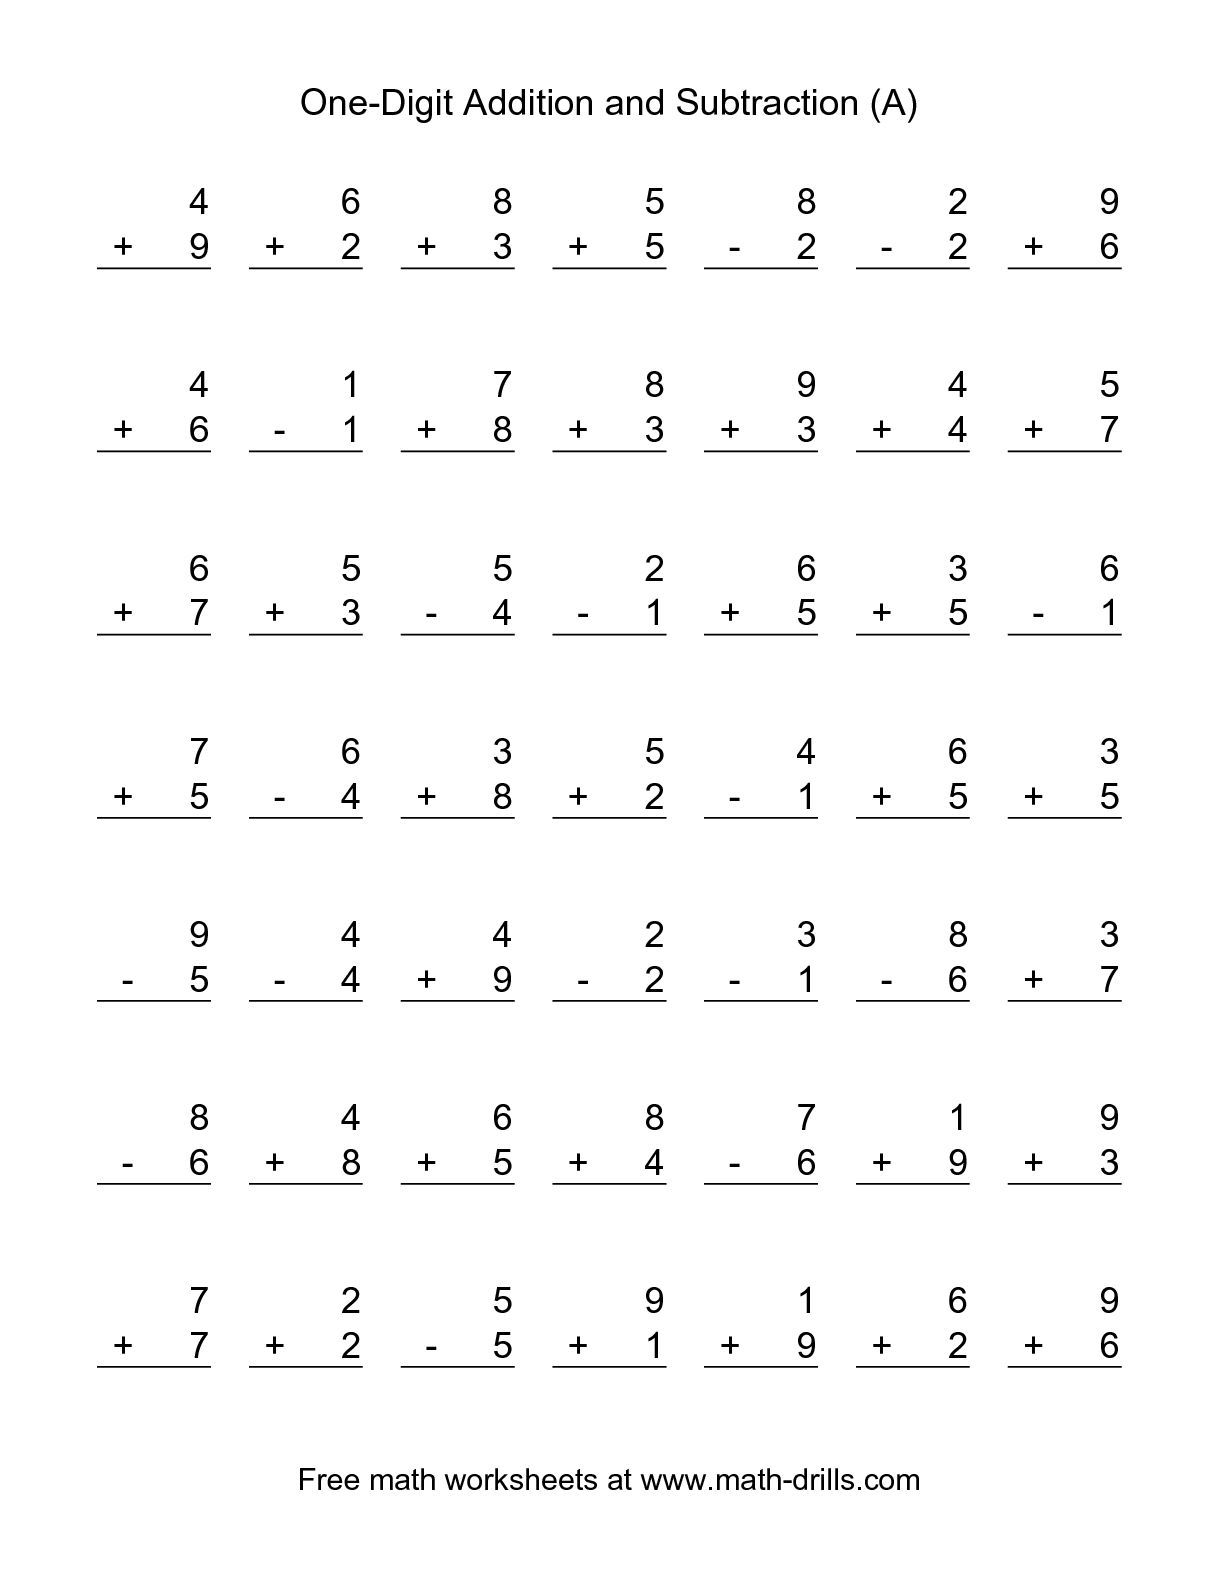 the singledigit a math worksheet from the combined addition and  the singledigit a math worksheet from the combined addition and subtraction  worksheets page at mathdrillscom